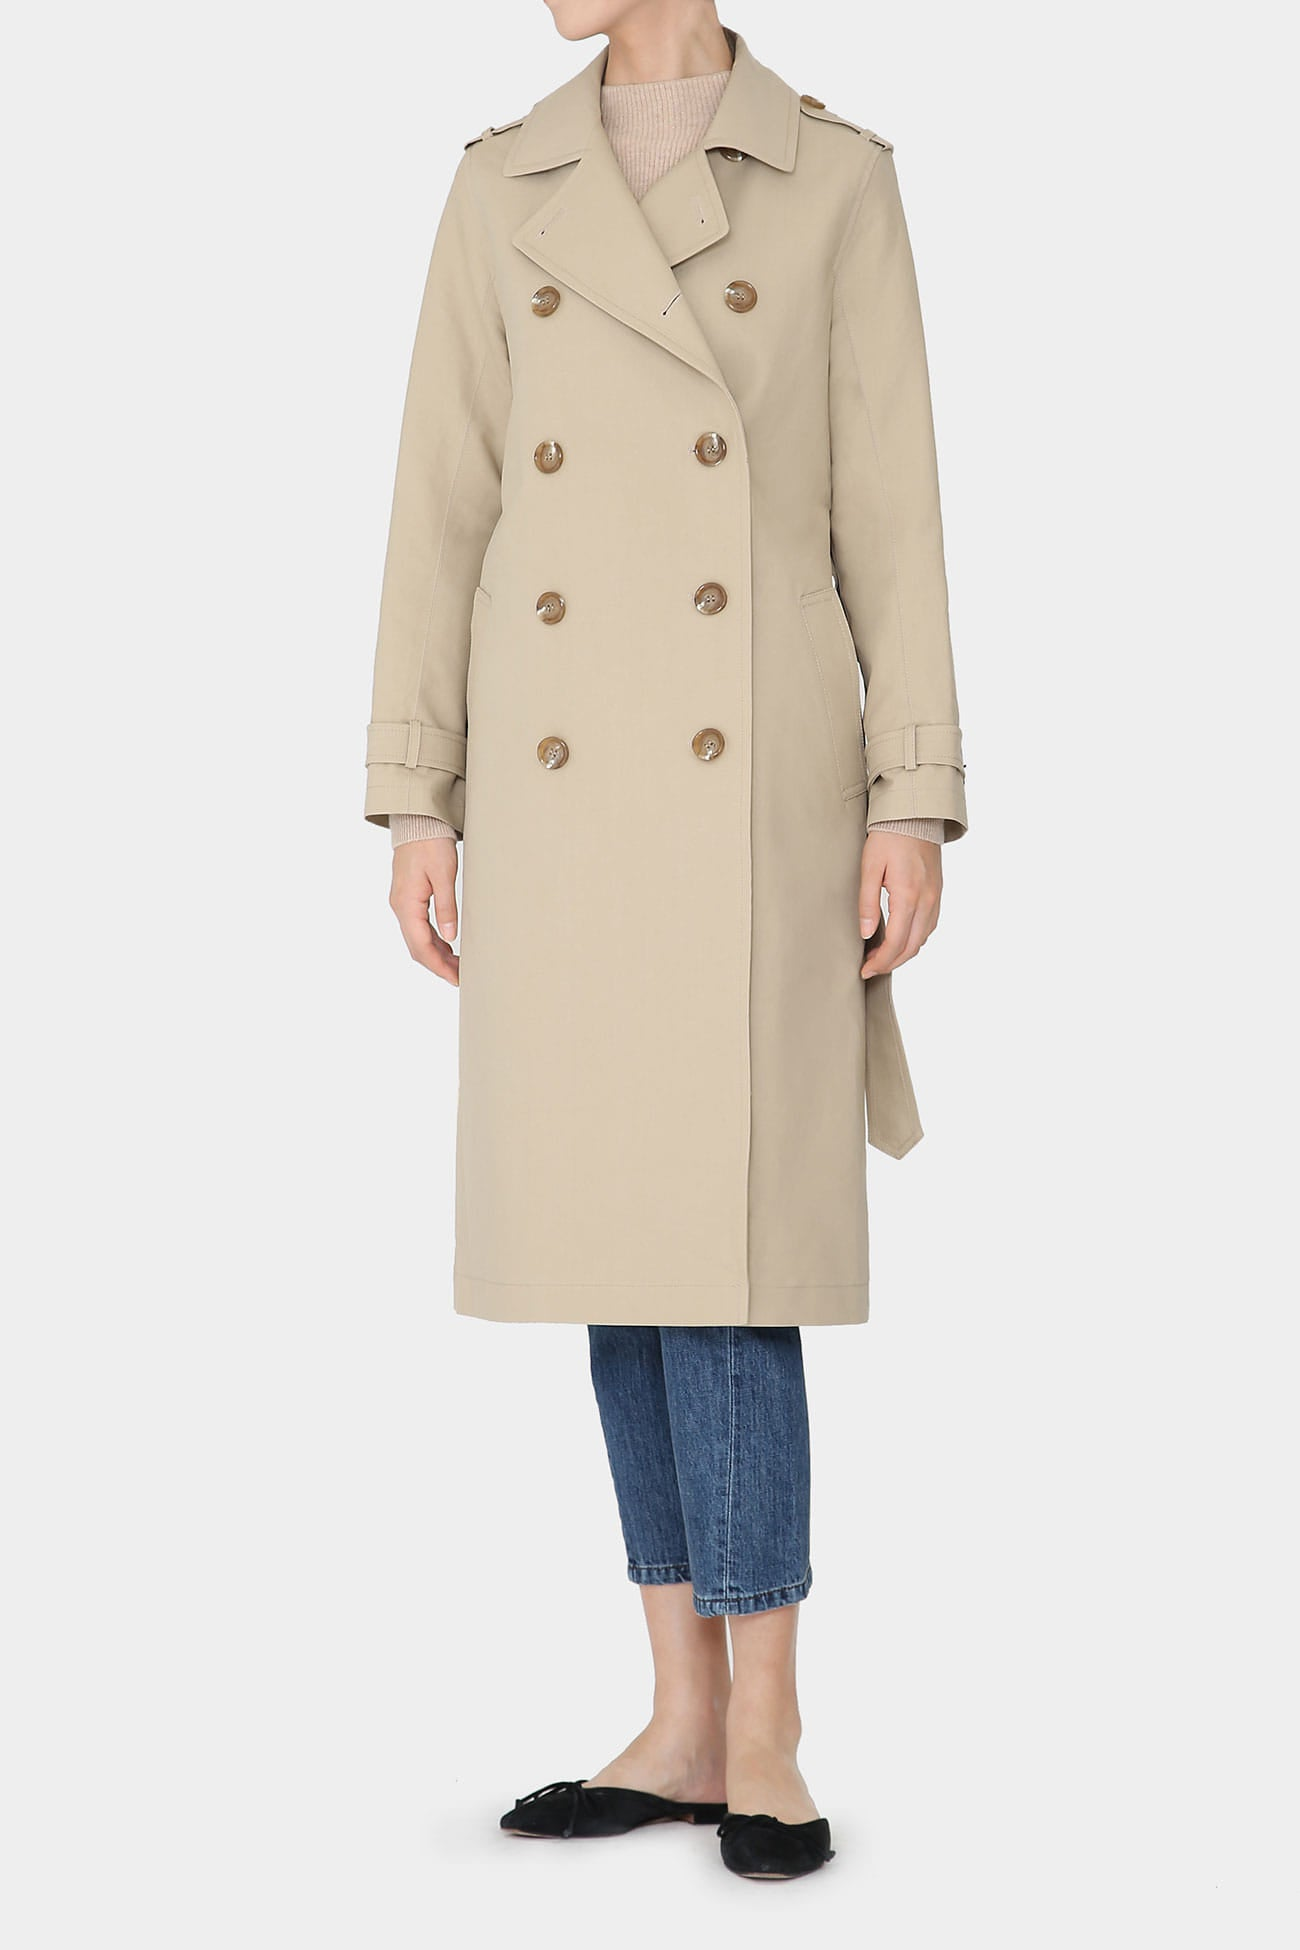 NATURAL LOIS CLASSIC COTTON TRENCH